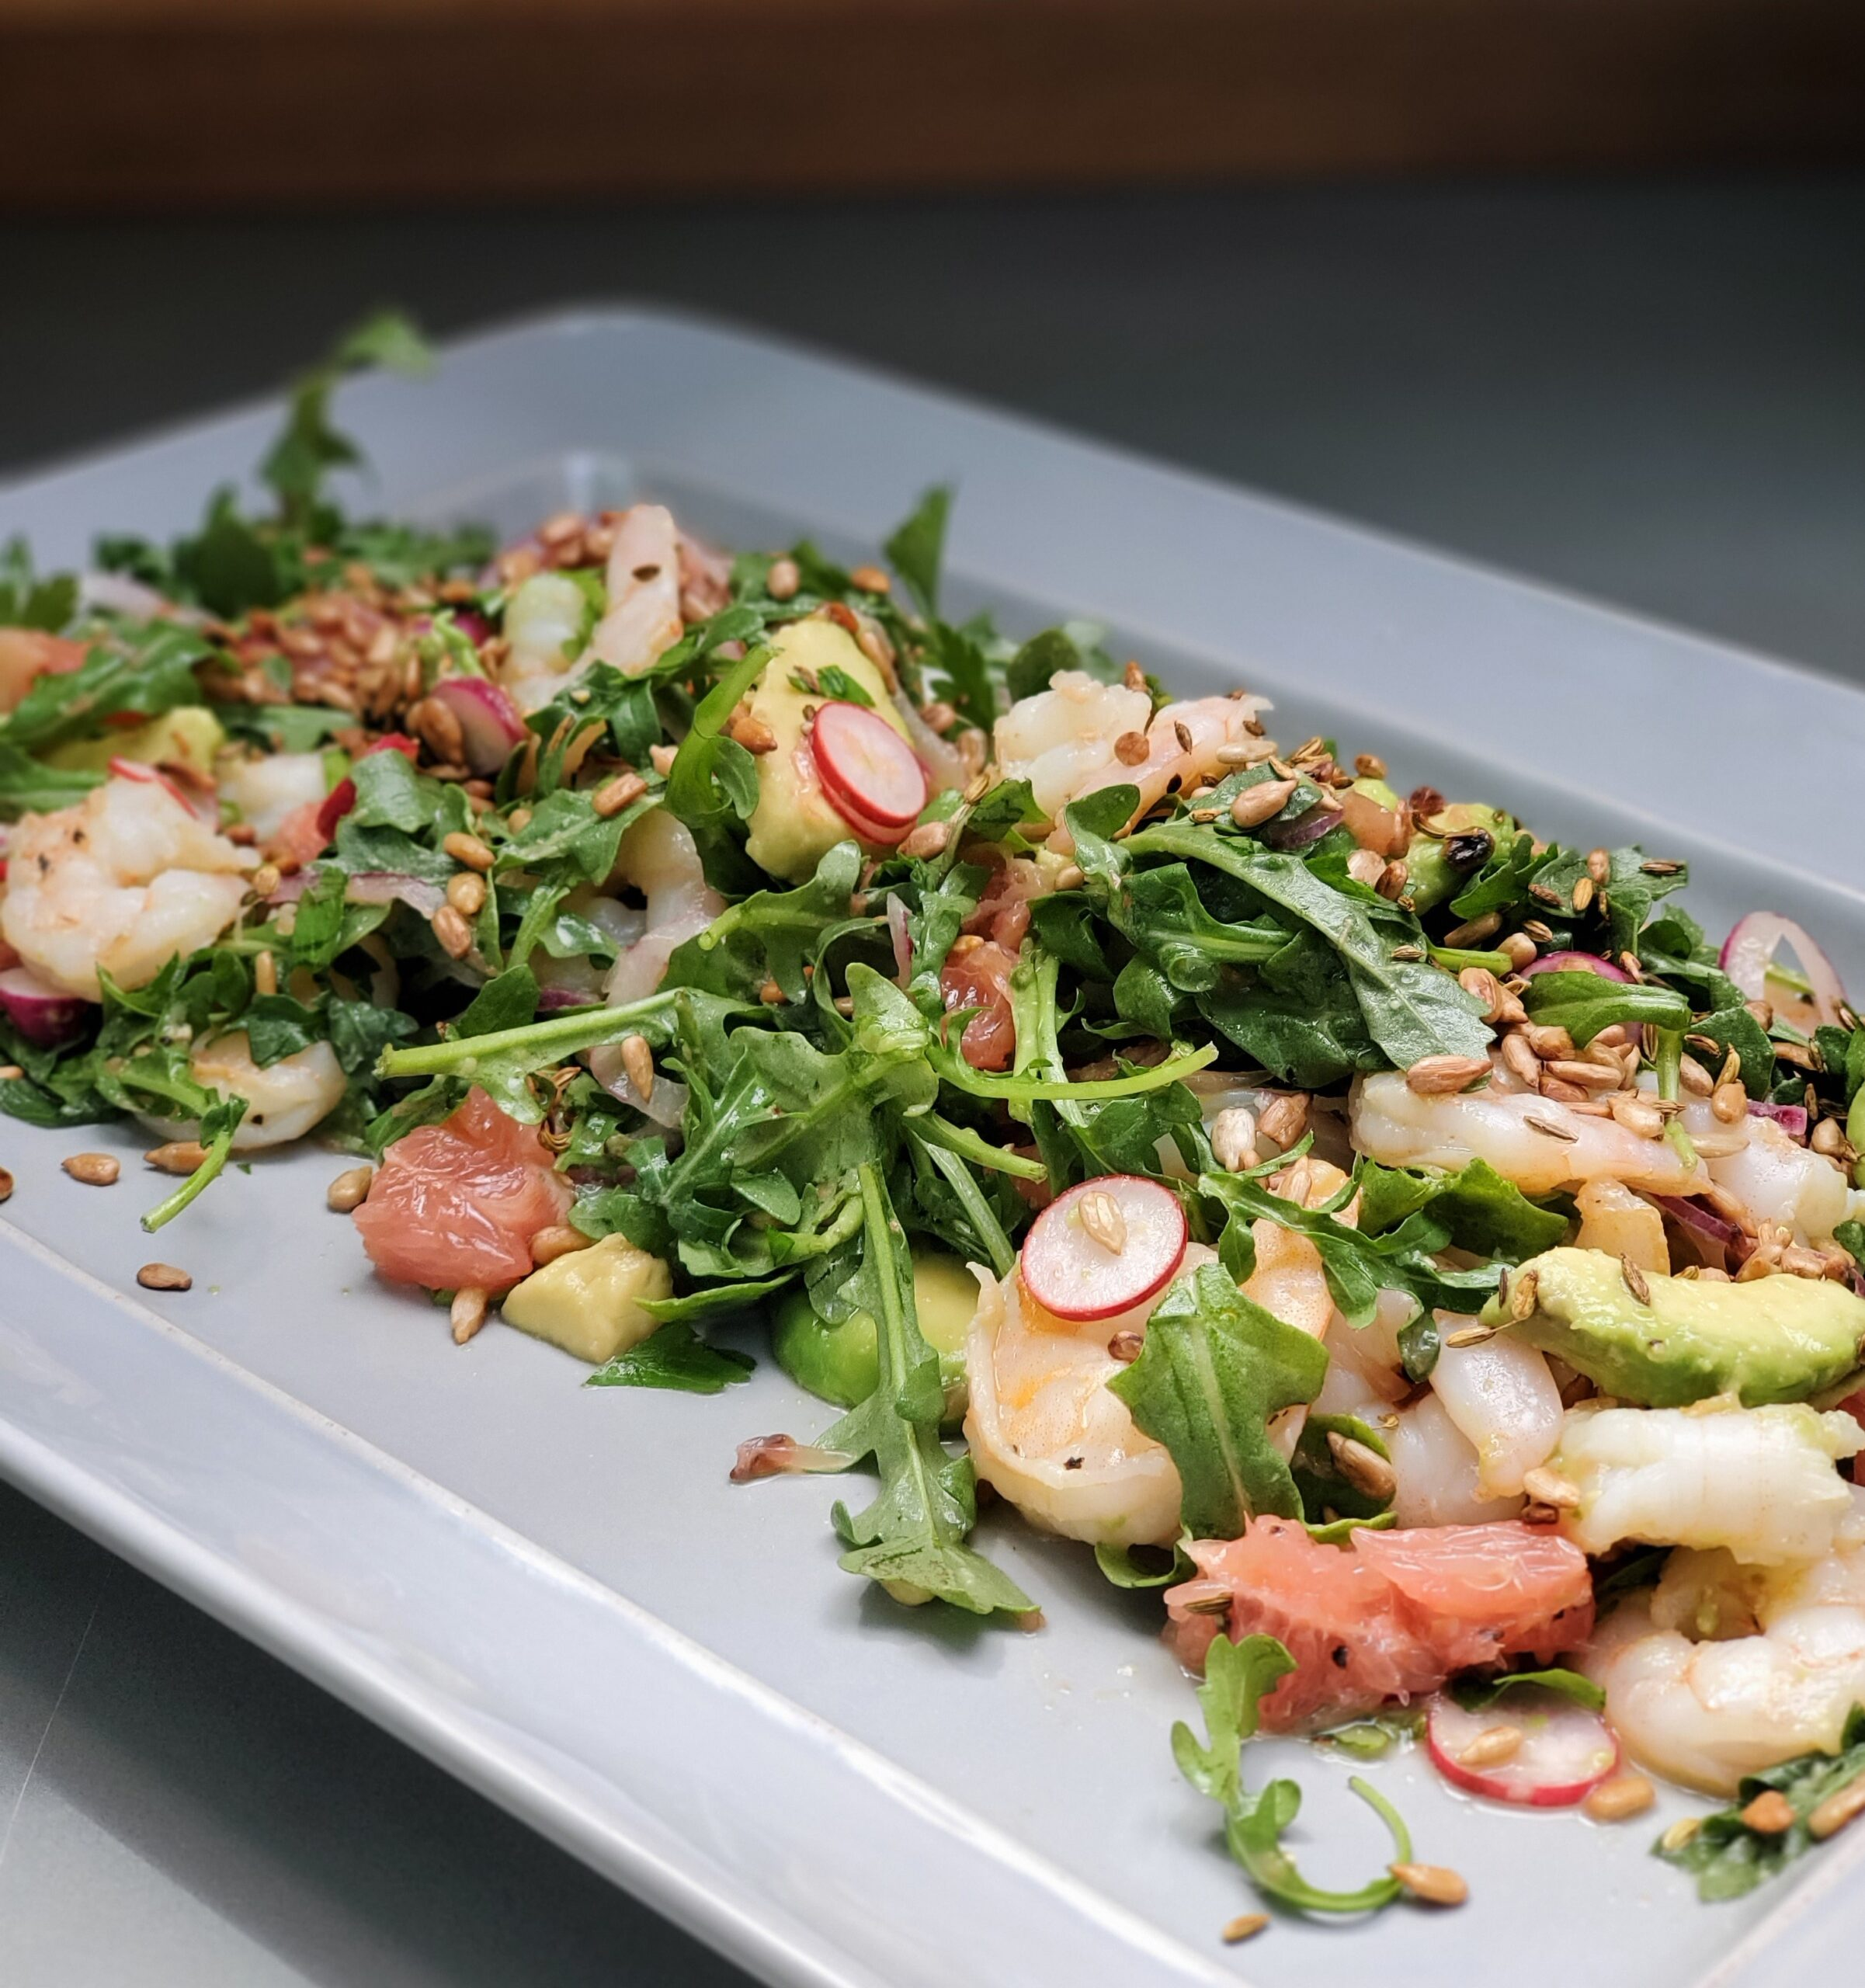 Arugula Salad w/ shrimp, grapefruit & avocado